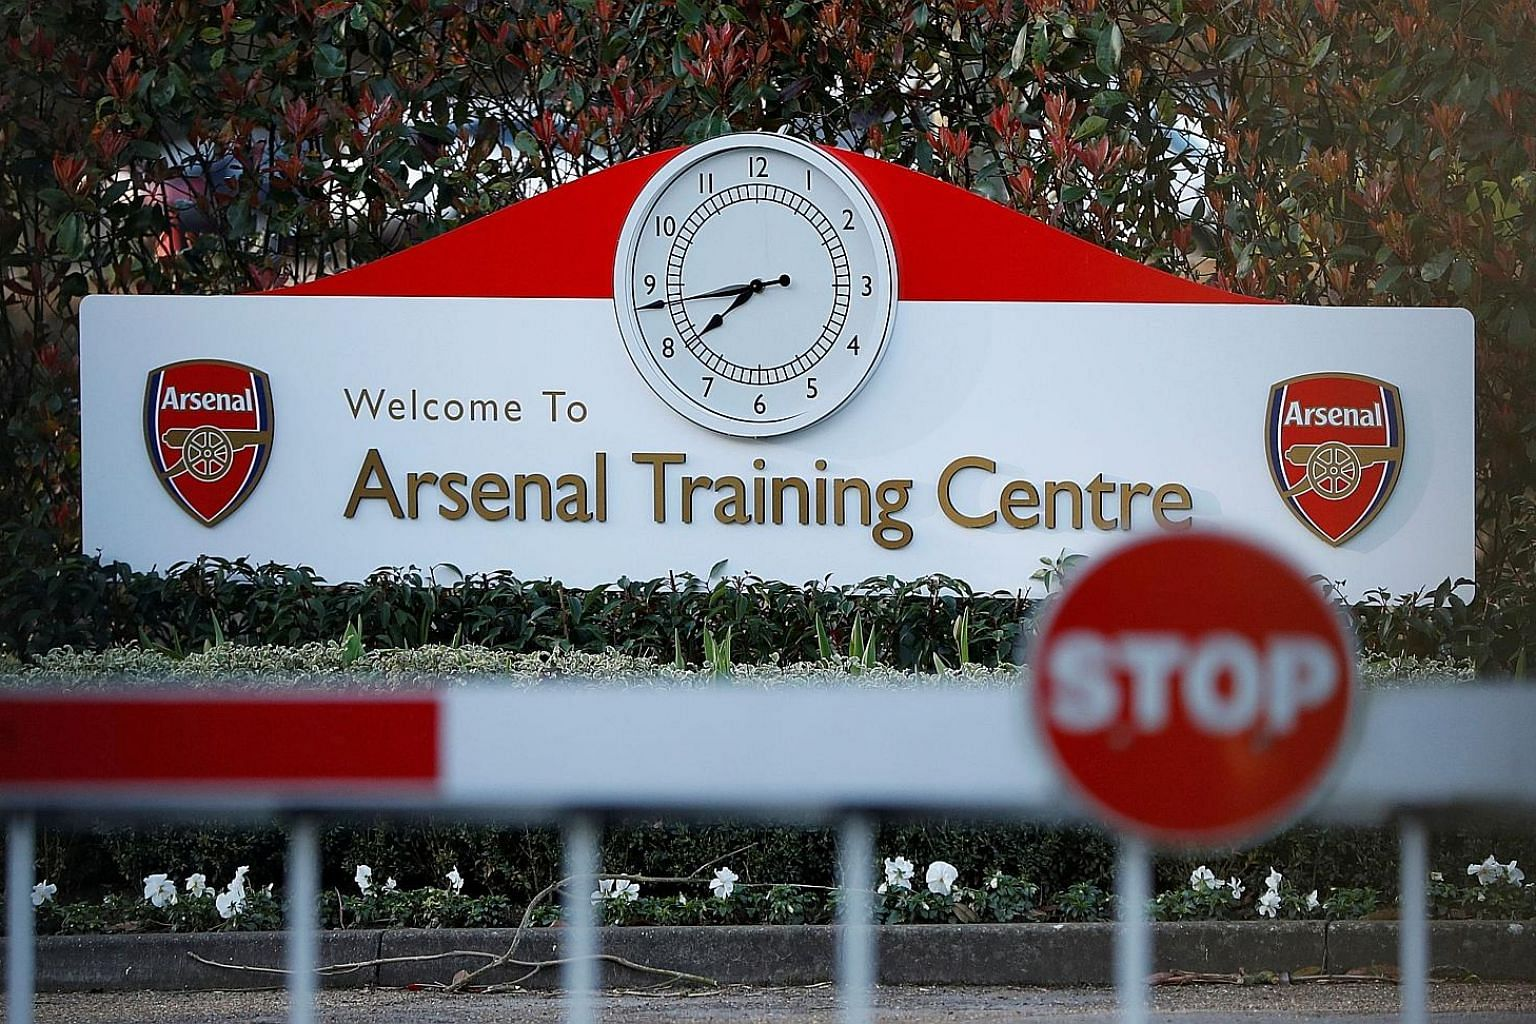 Arsenal players will be allowed to return to the London Colney ground this week for training. The club joins West Ham, Brighton and Tottenham in opening training facilities to players.